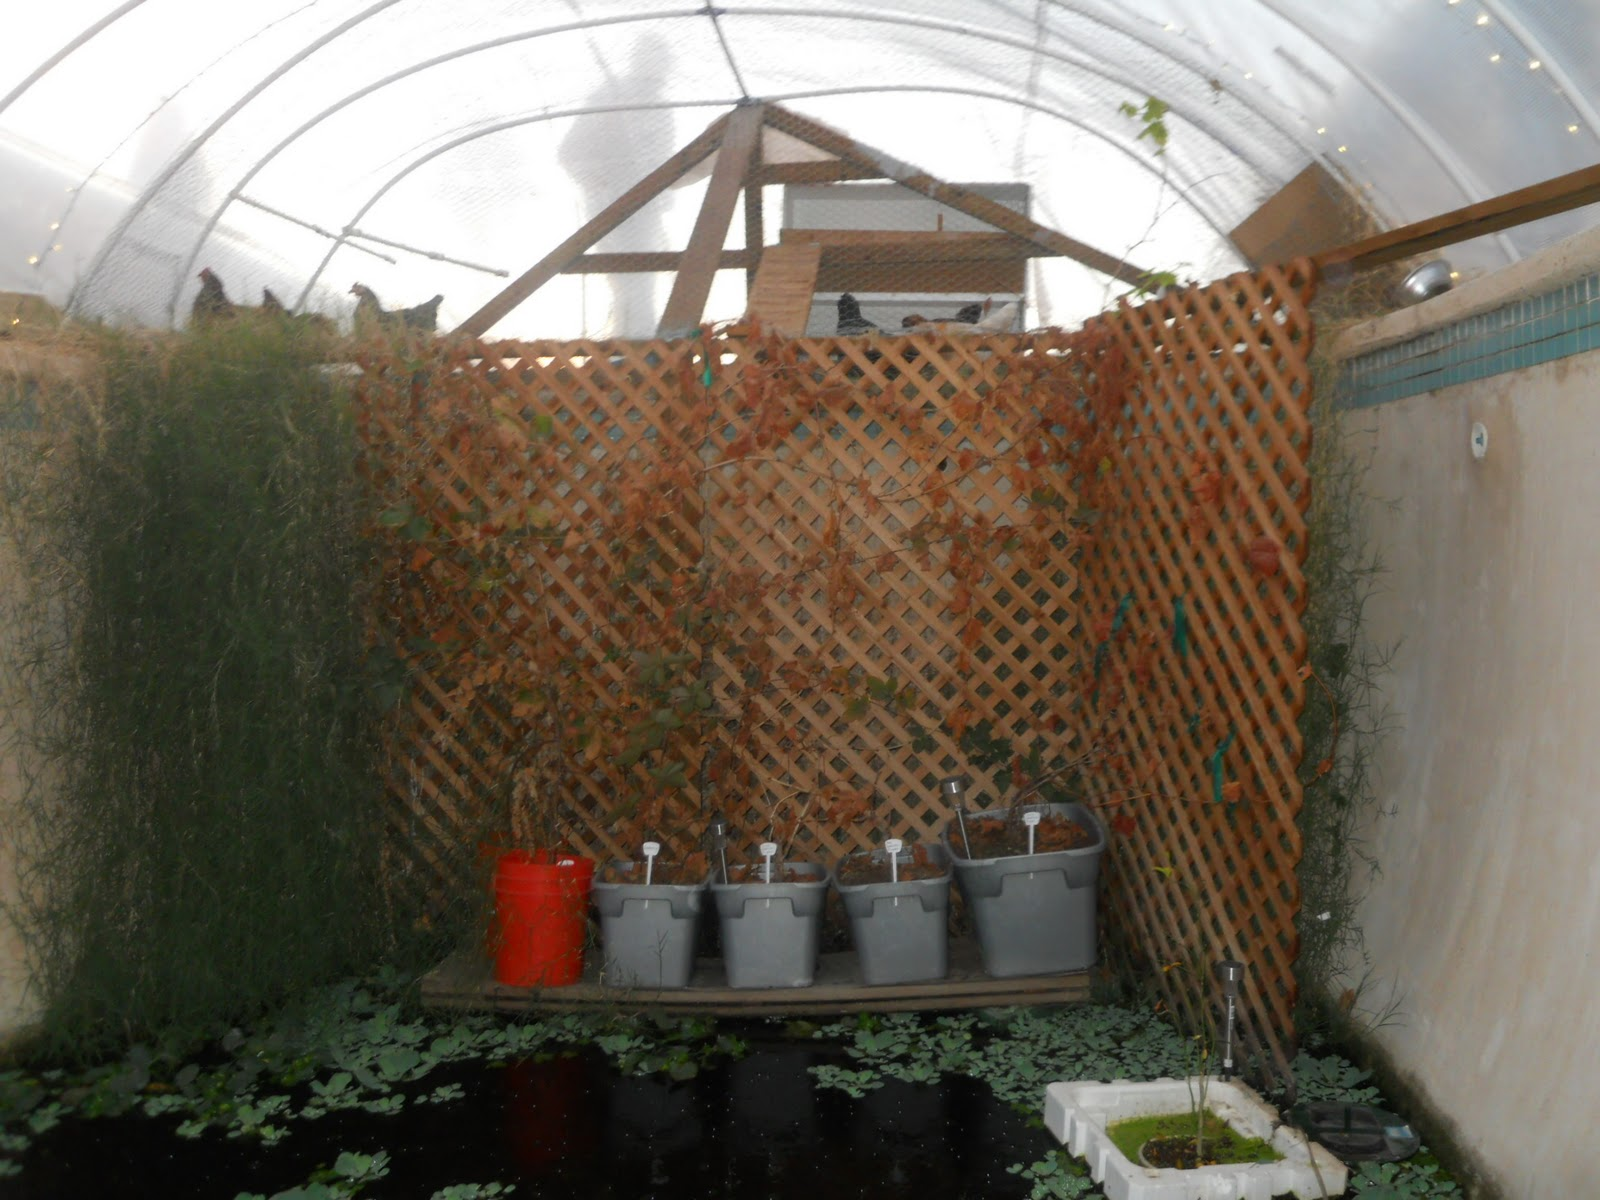 Their Unwanted Pool Into A Sustainable Aquaponic Garden